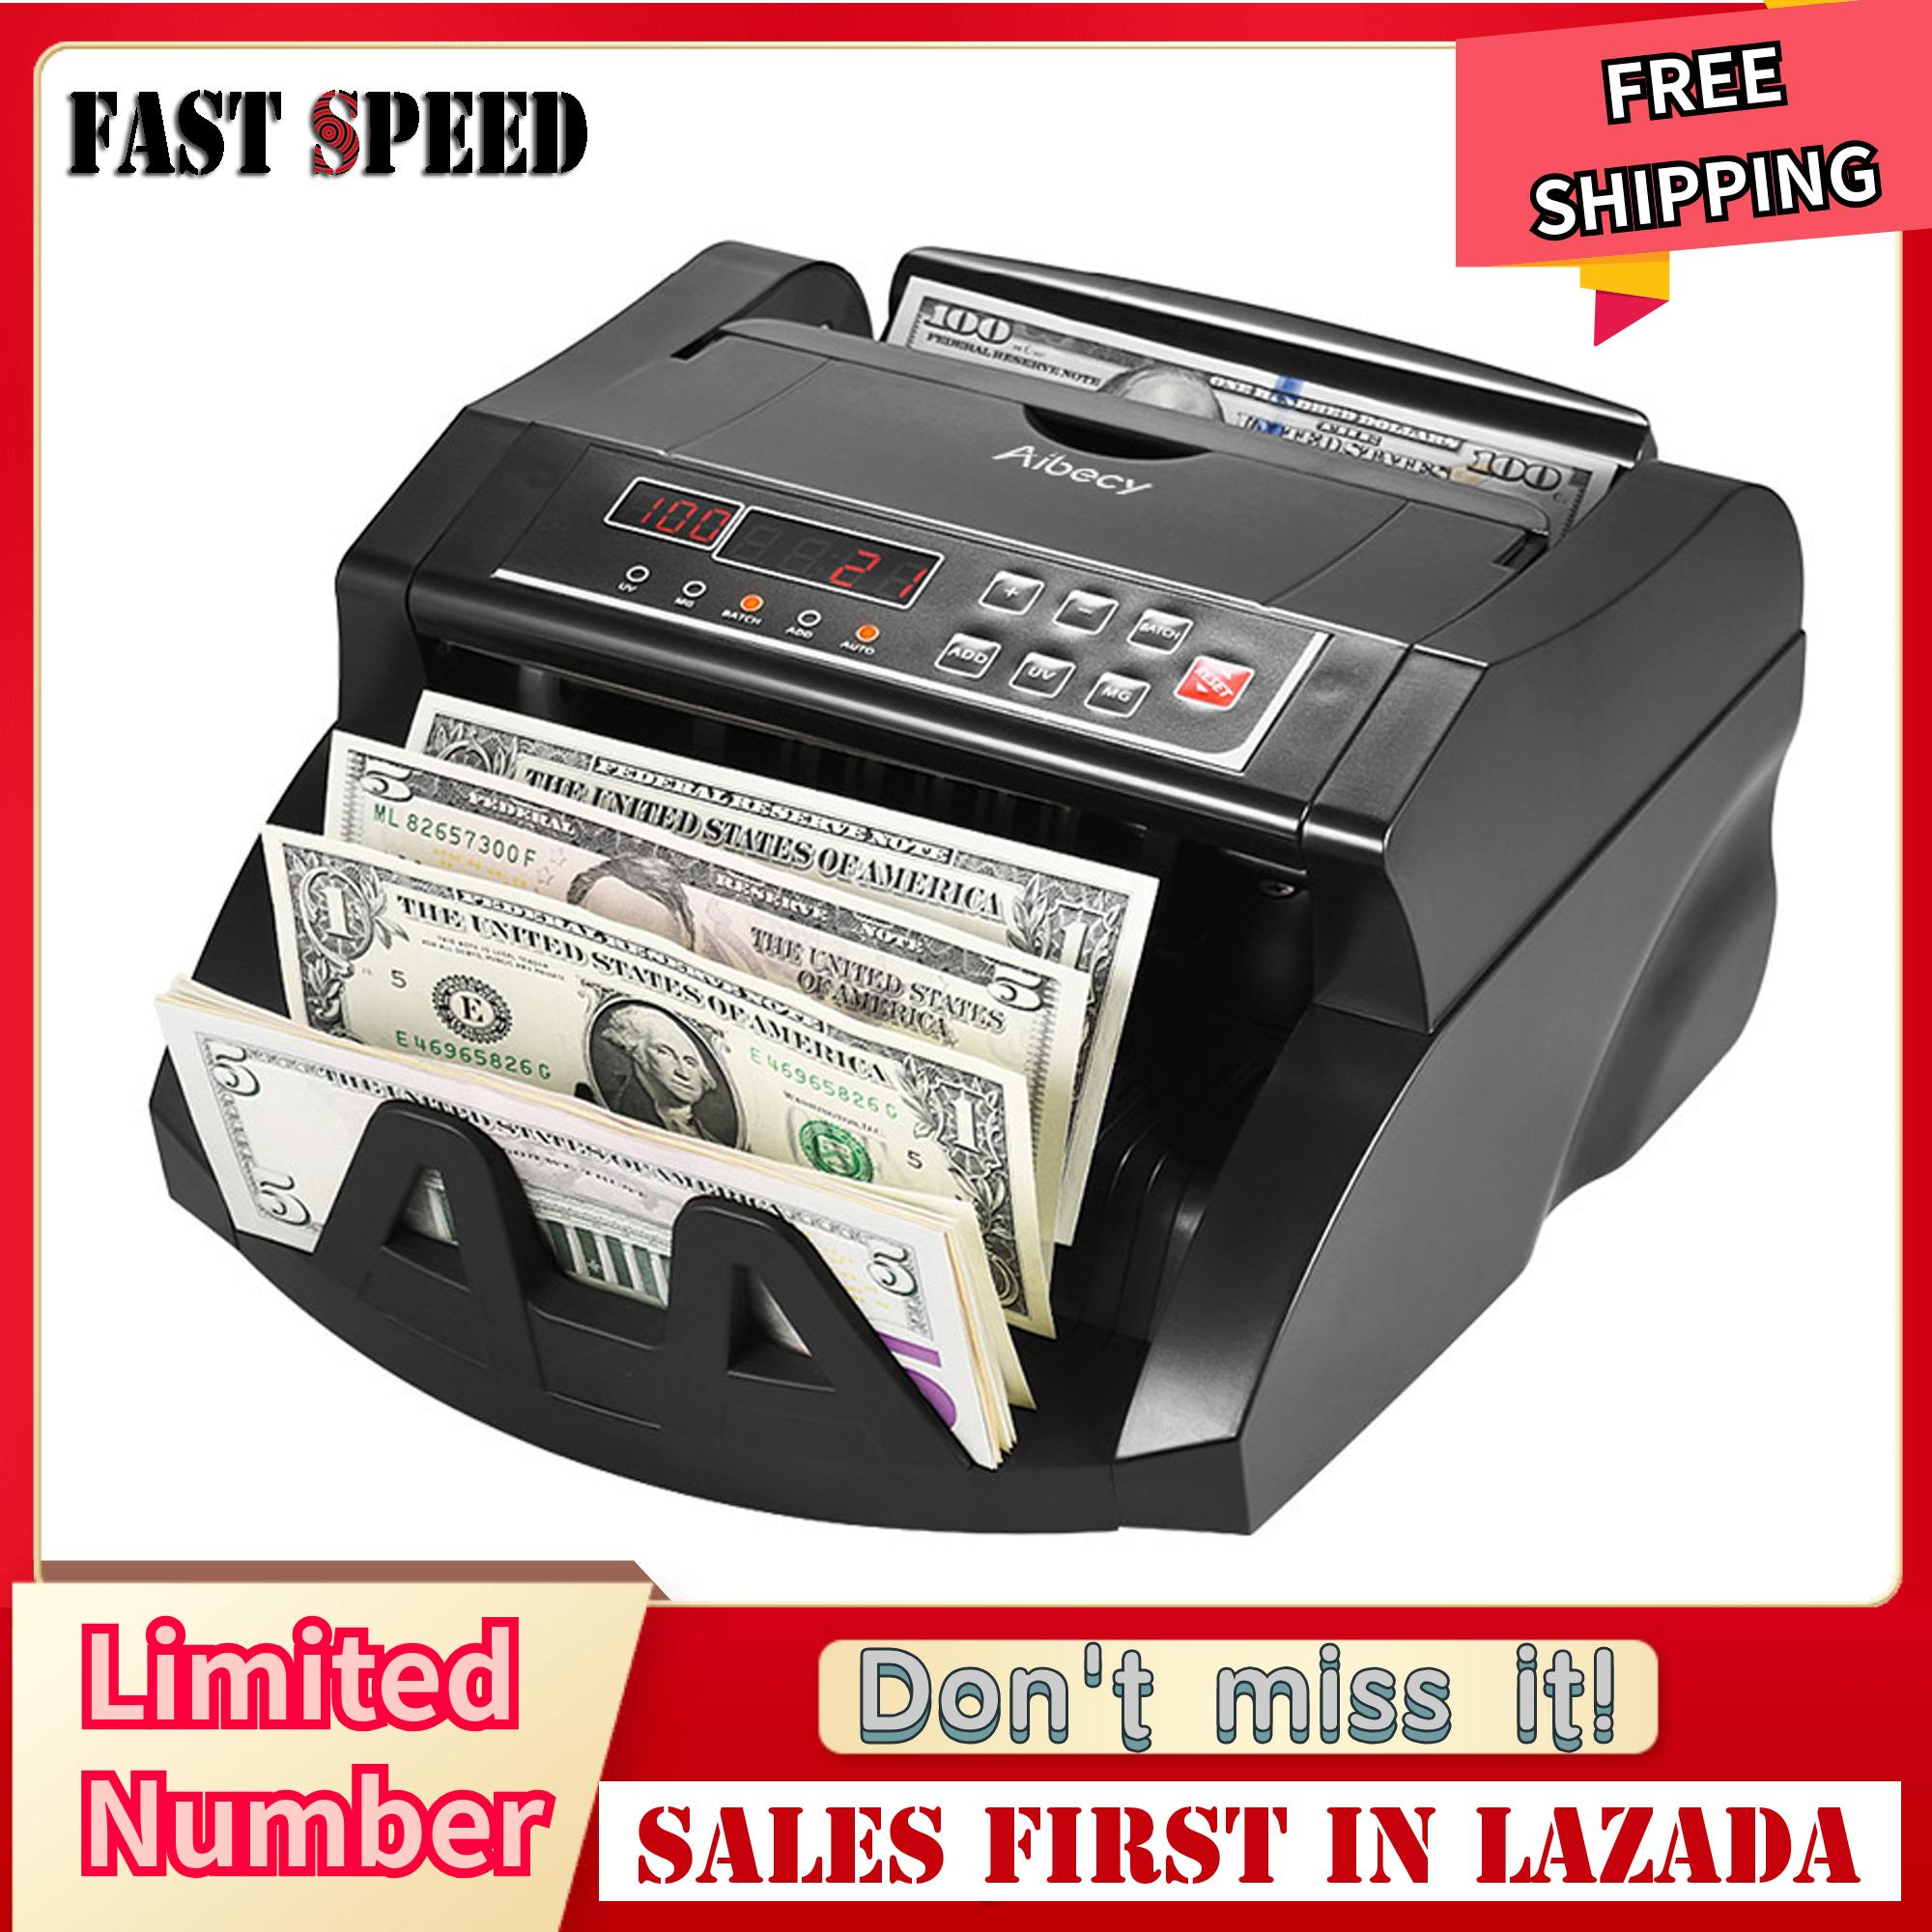 Aibecy Multi-Currency Banknote Counter Cash Money Bill Automatic Counting Machine Ir/dd Detect Lcd Display For Sgd Us Dollar Euro Pound Aud Hkd - Intl By Koko Shopping Mall.